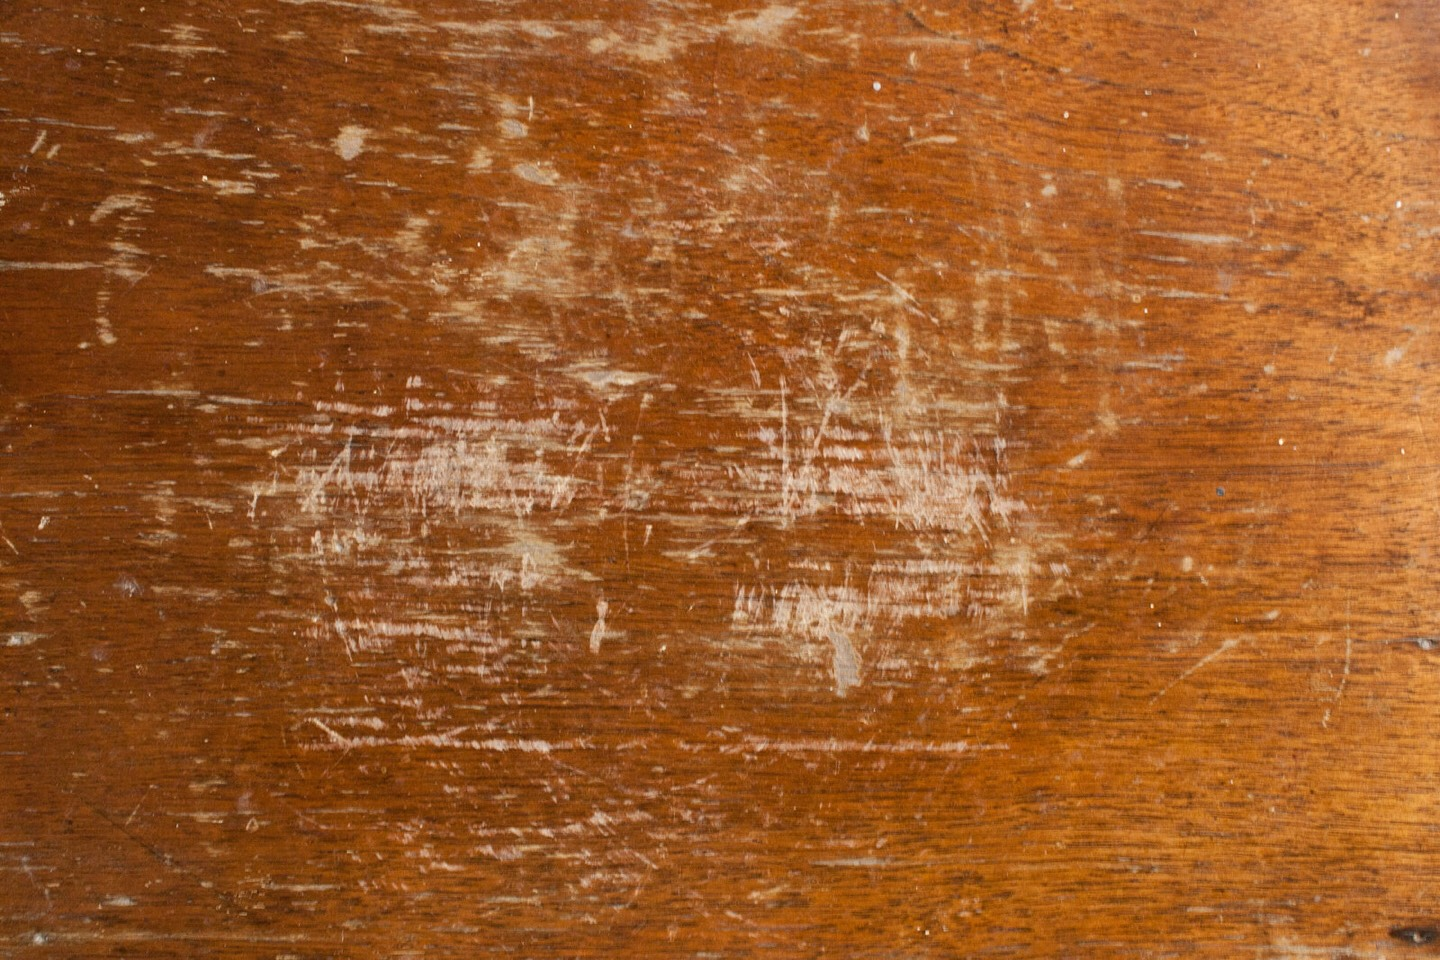 Fix scratched wood by mixing 1/4 cup of vinegar and 3/4 cup of olive oil, and rubbing it on your wood with a rag.